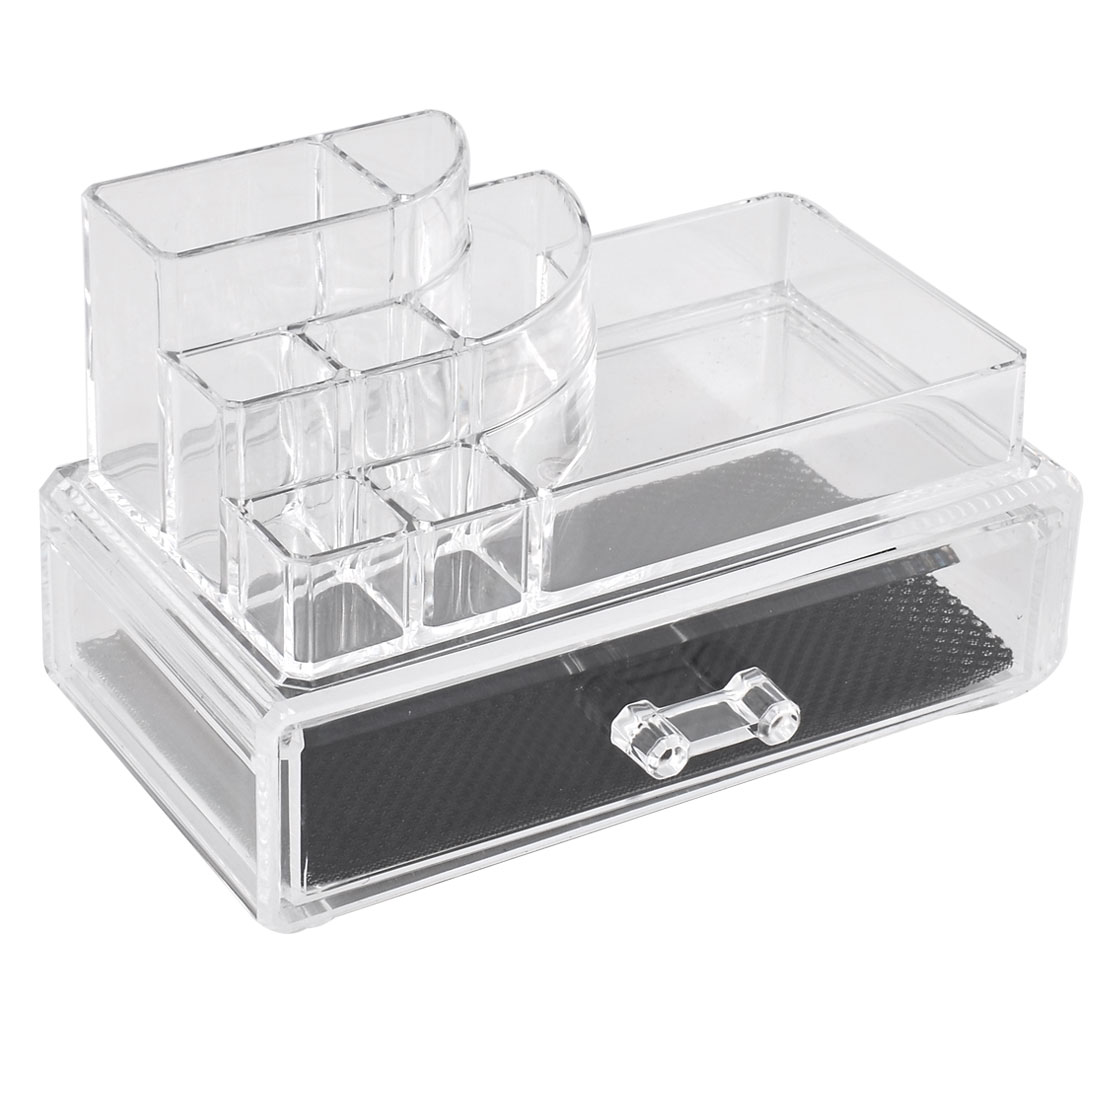 Lady Acrylic Cosmetic Storage Drawer Case Jewelry Organizer Holder Display Box Set 2 in 1